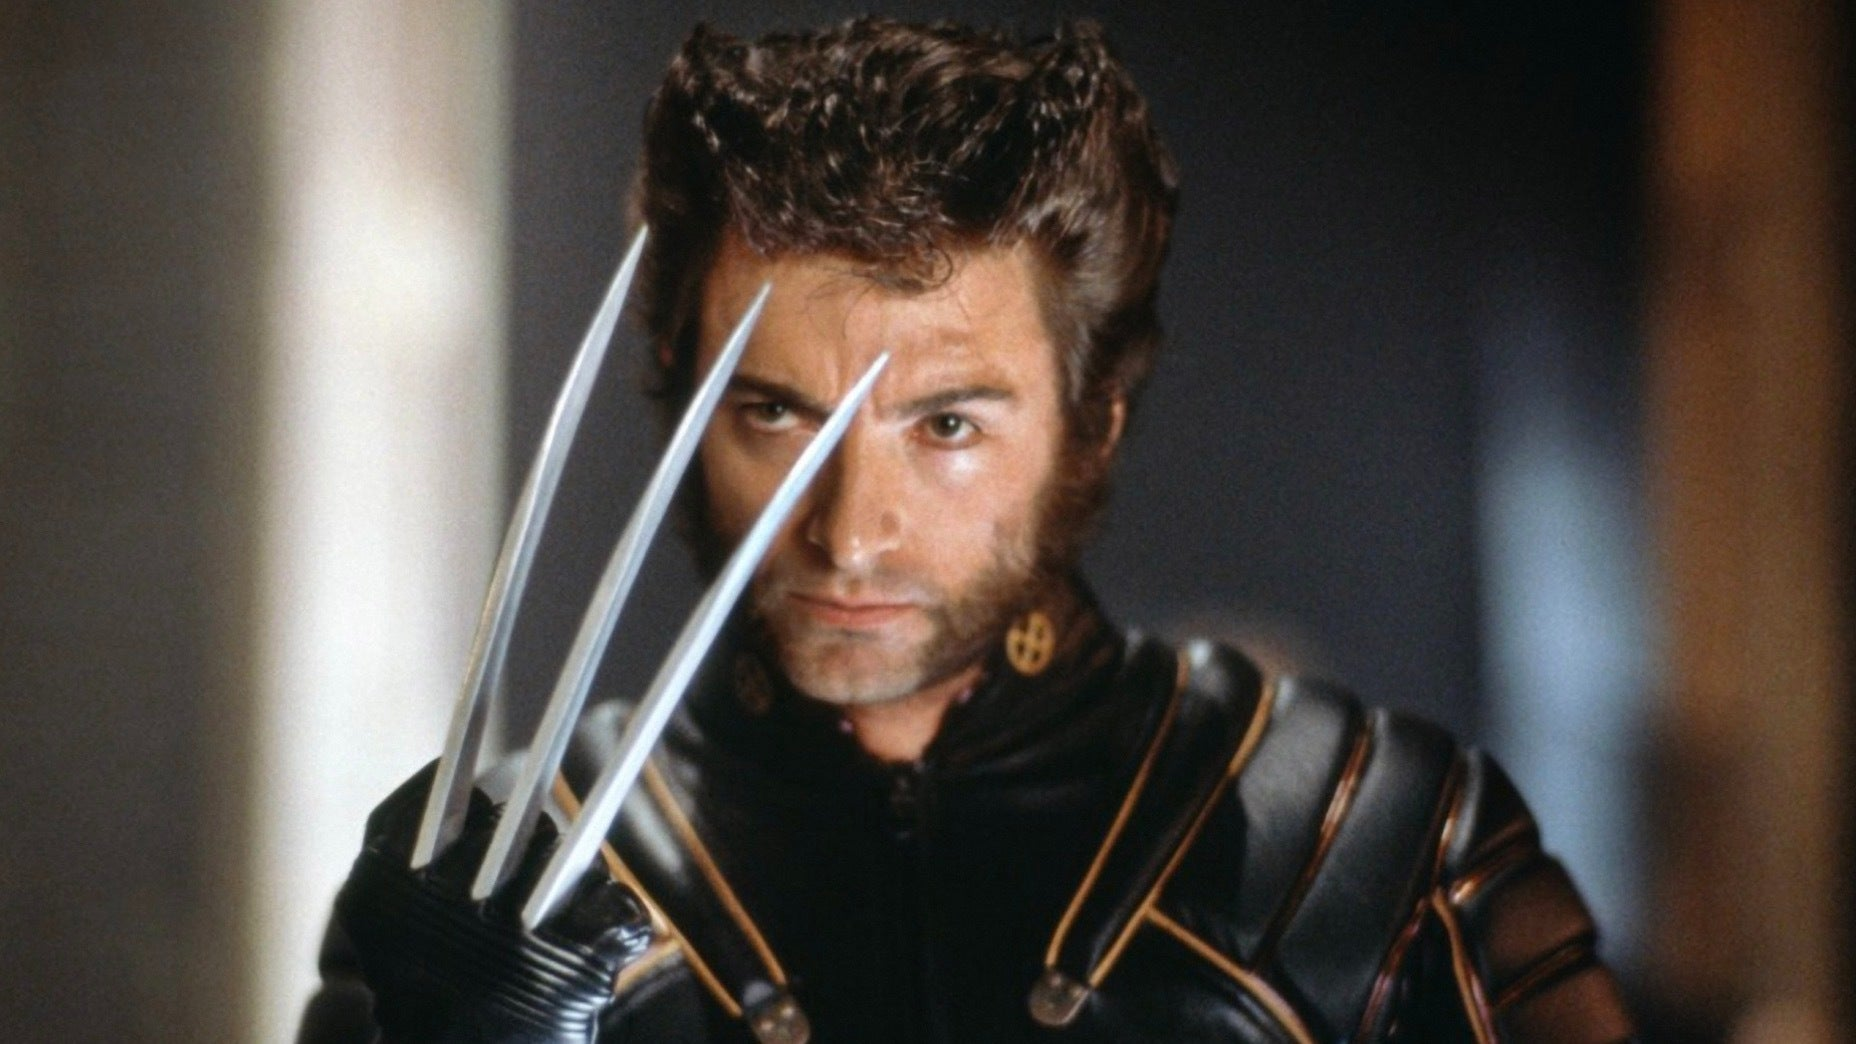 Matthew Vaughn Wanted To Make A Young Wolverine Movie After X-Men: First Class